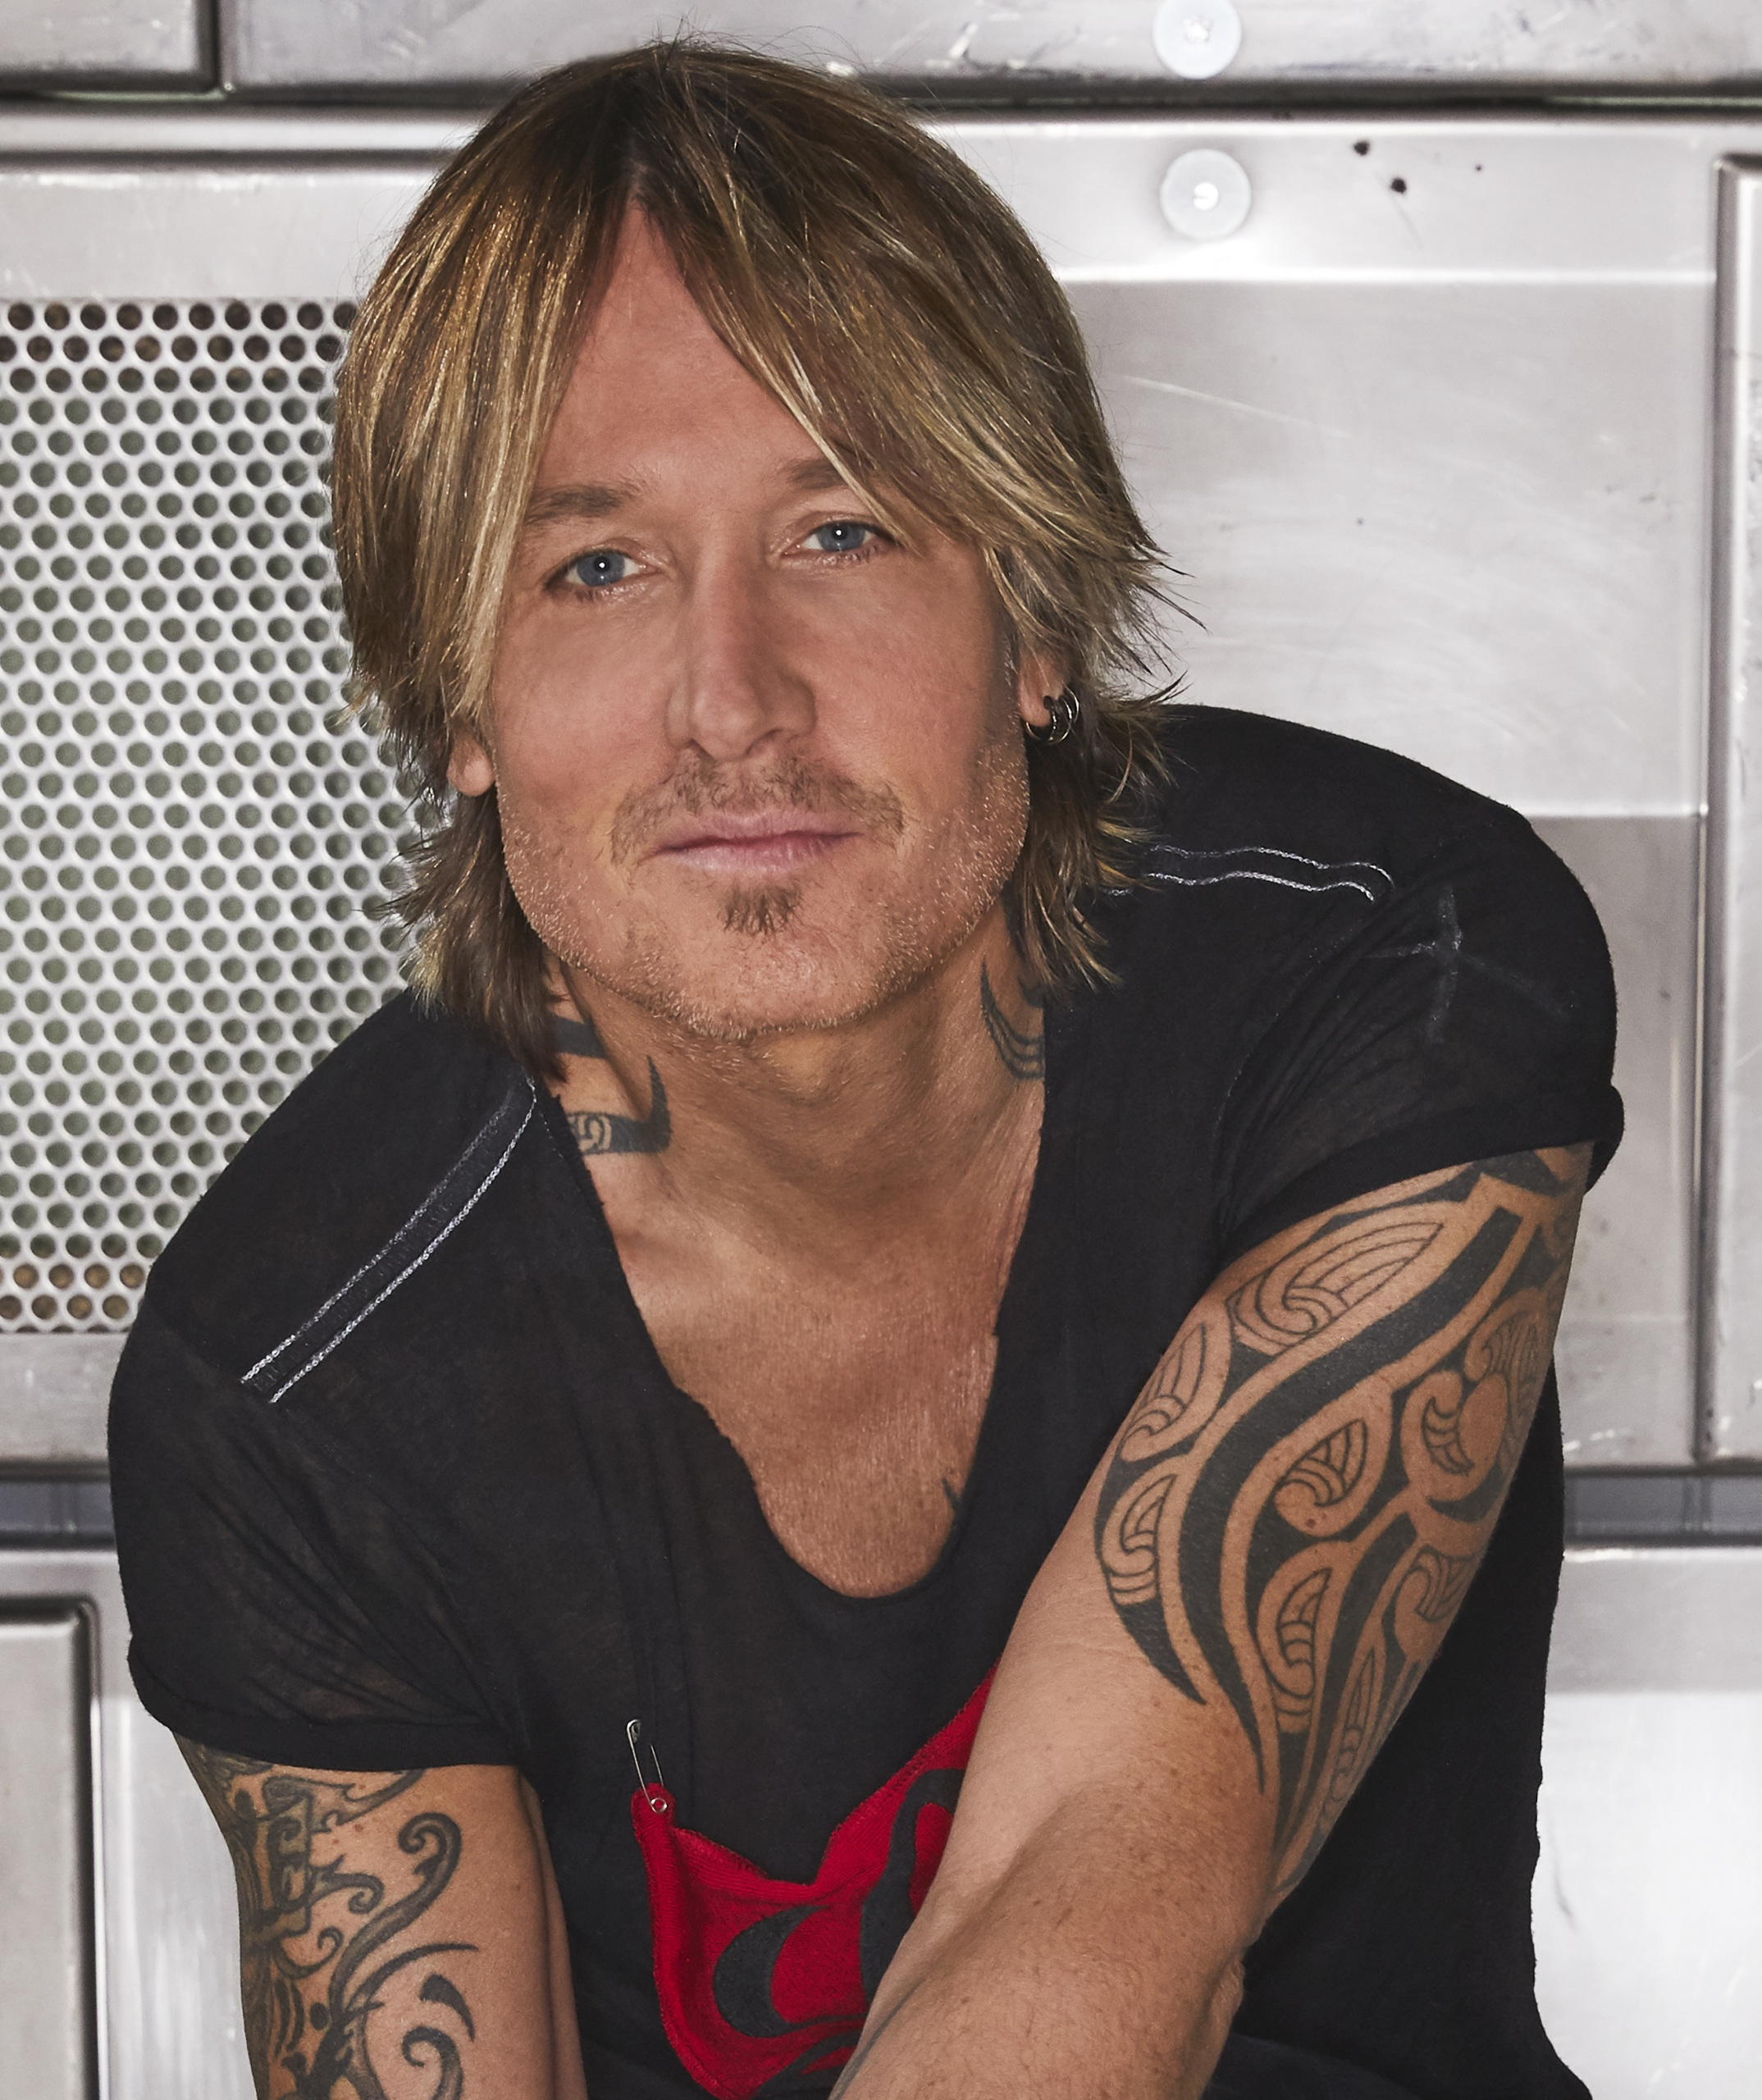 KEITH URBAN TO BE HONORED WITH COUNTRY RADIO BROADCASTERS 2021 ARTIST CAREER ACHIEVEMENT AWARD.